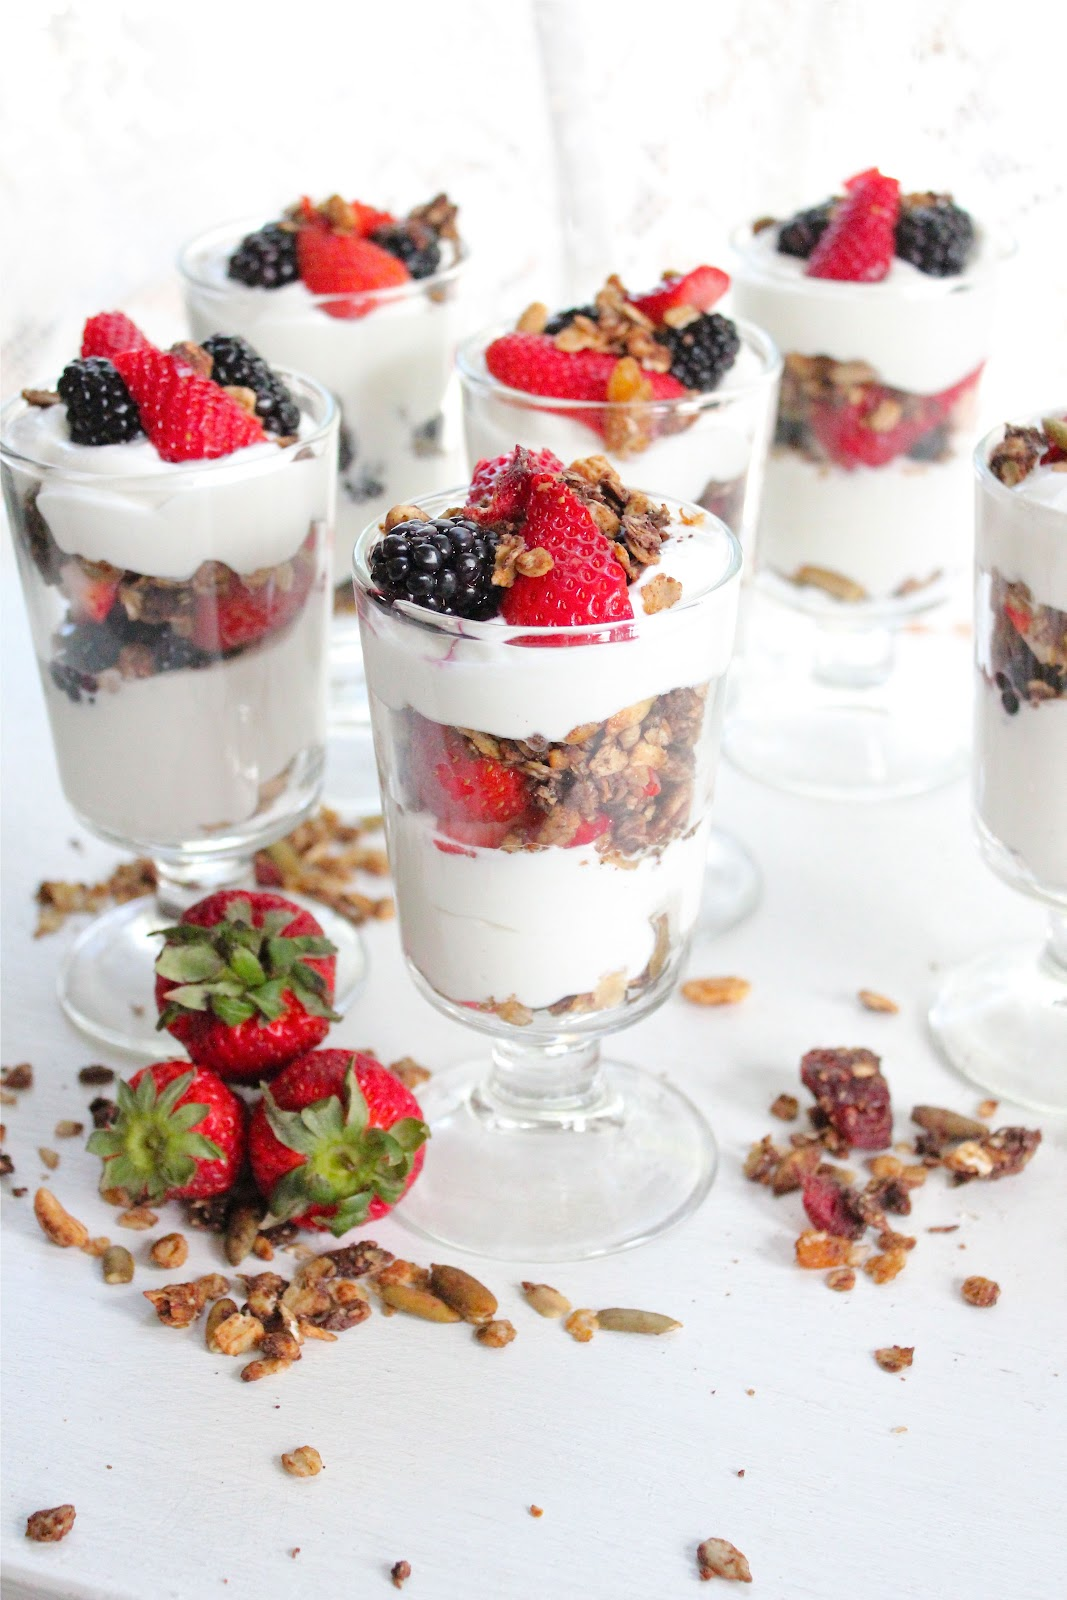 Fruity Tofu Parfait With Granola Recipe — Dishmaps